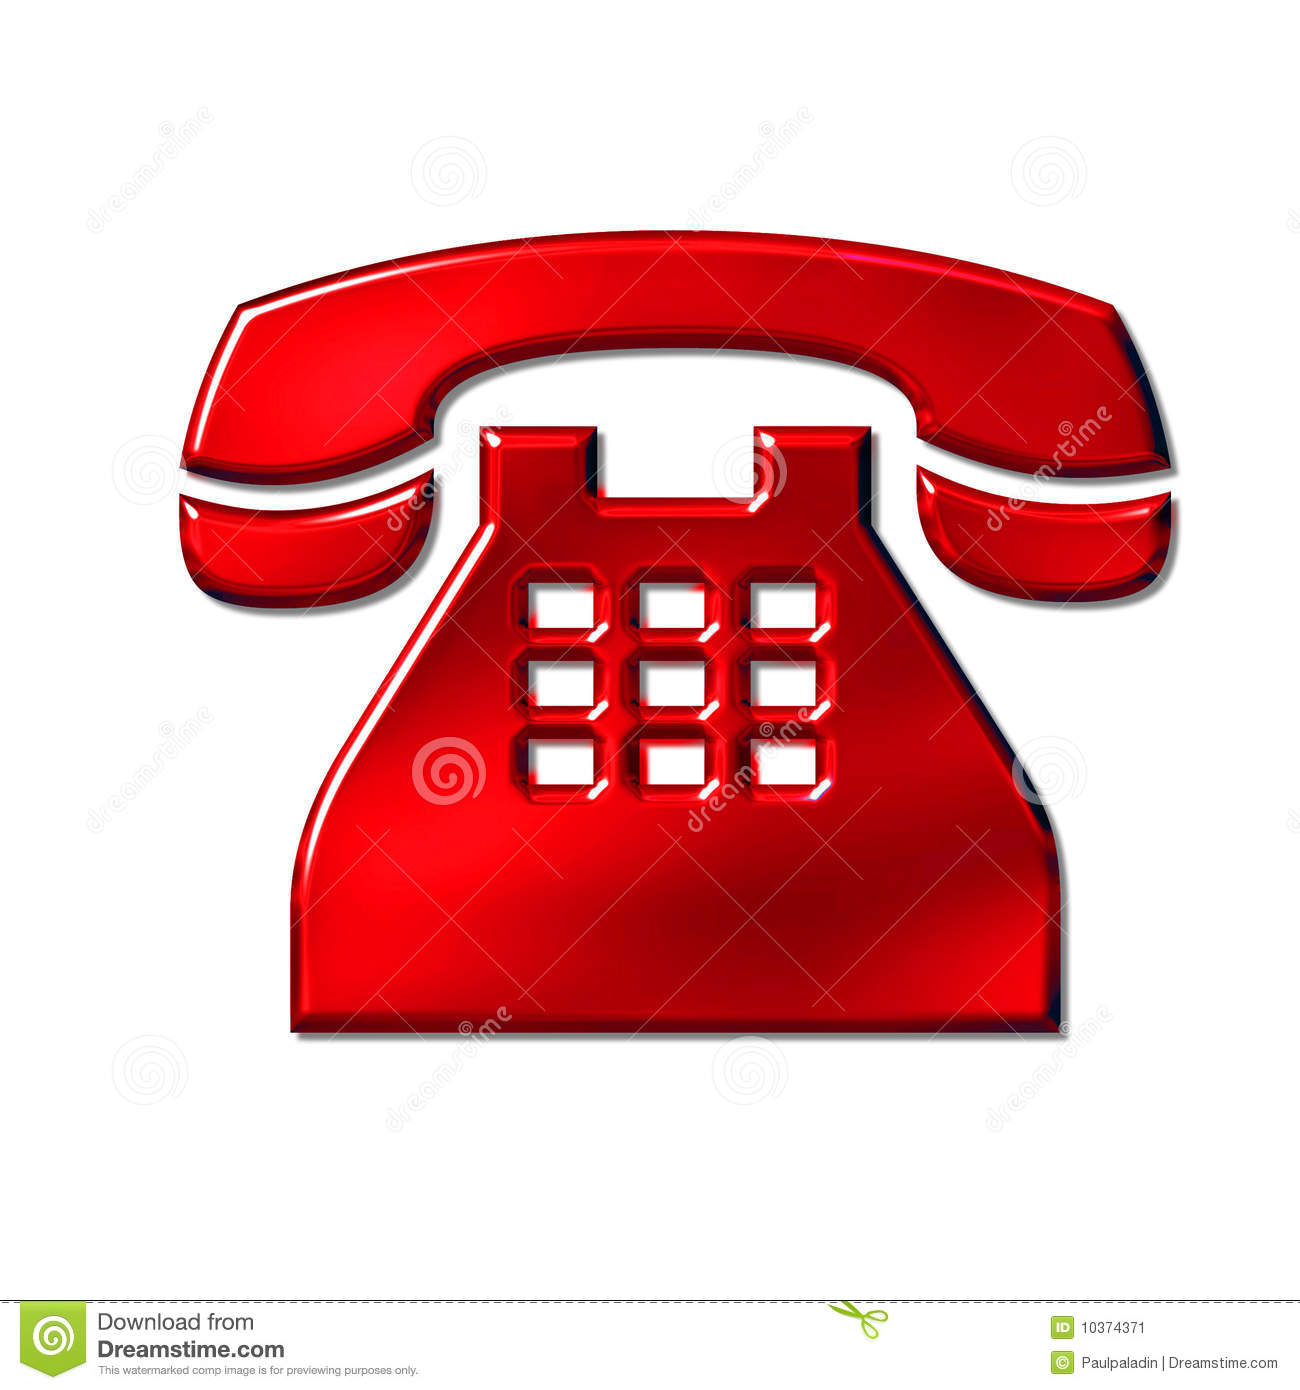 Phone Ringing Images Stock Photos amp Vectors  Shutterstock